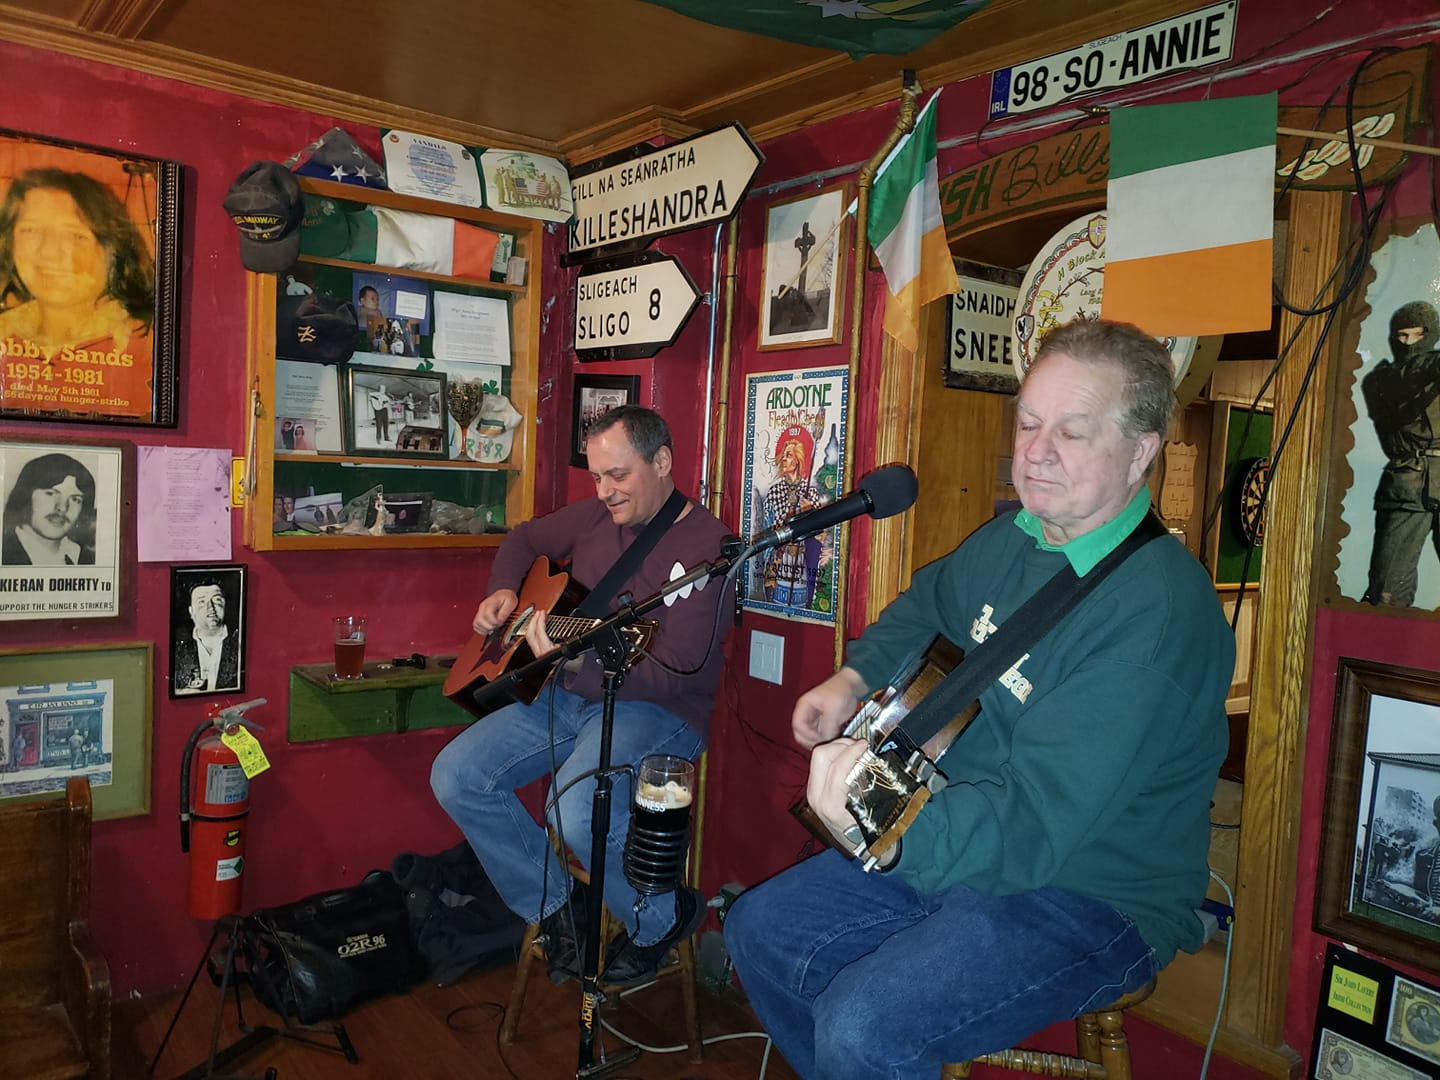 tir na nog with Joe11-23-2018